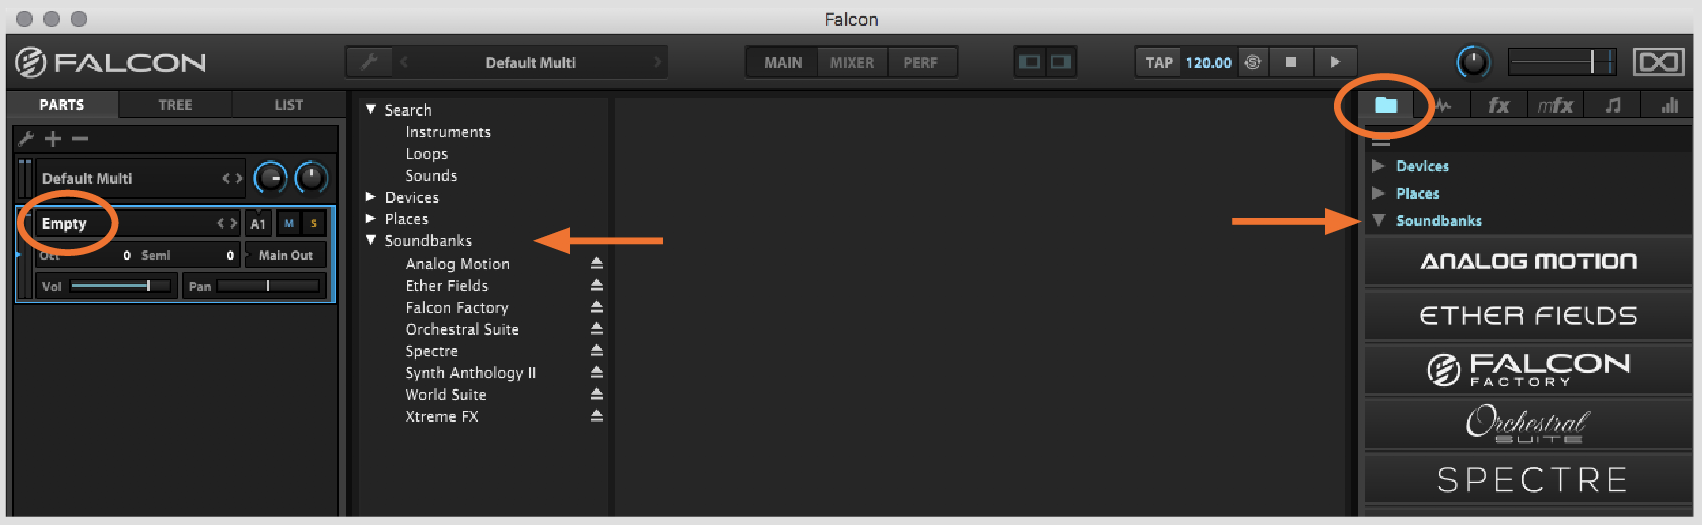 Falcon_Load_Soundbank.png